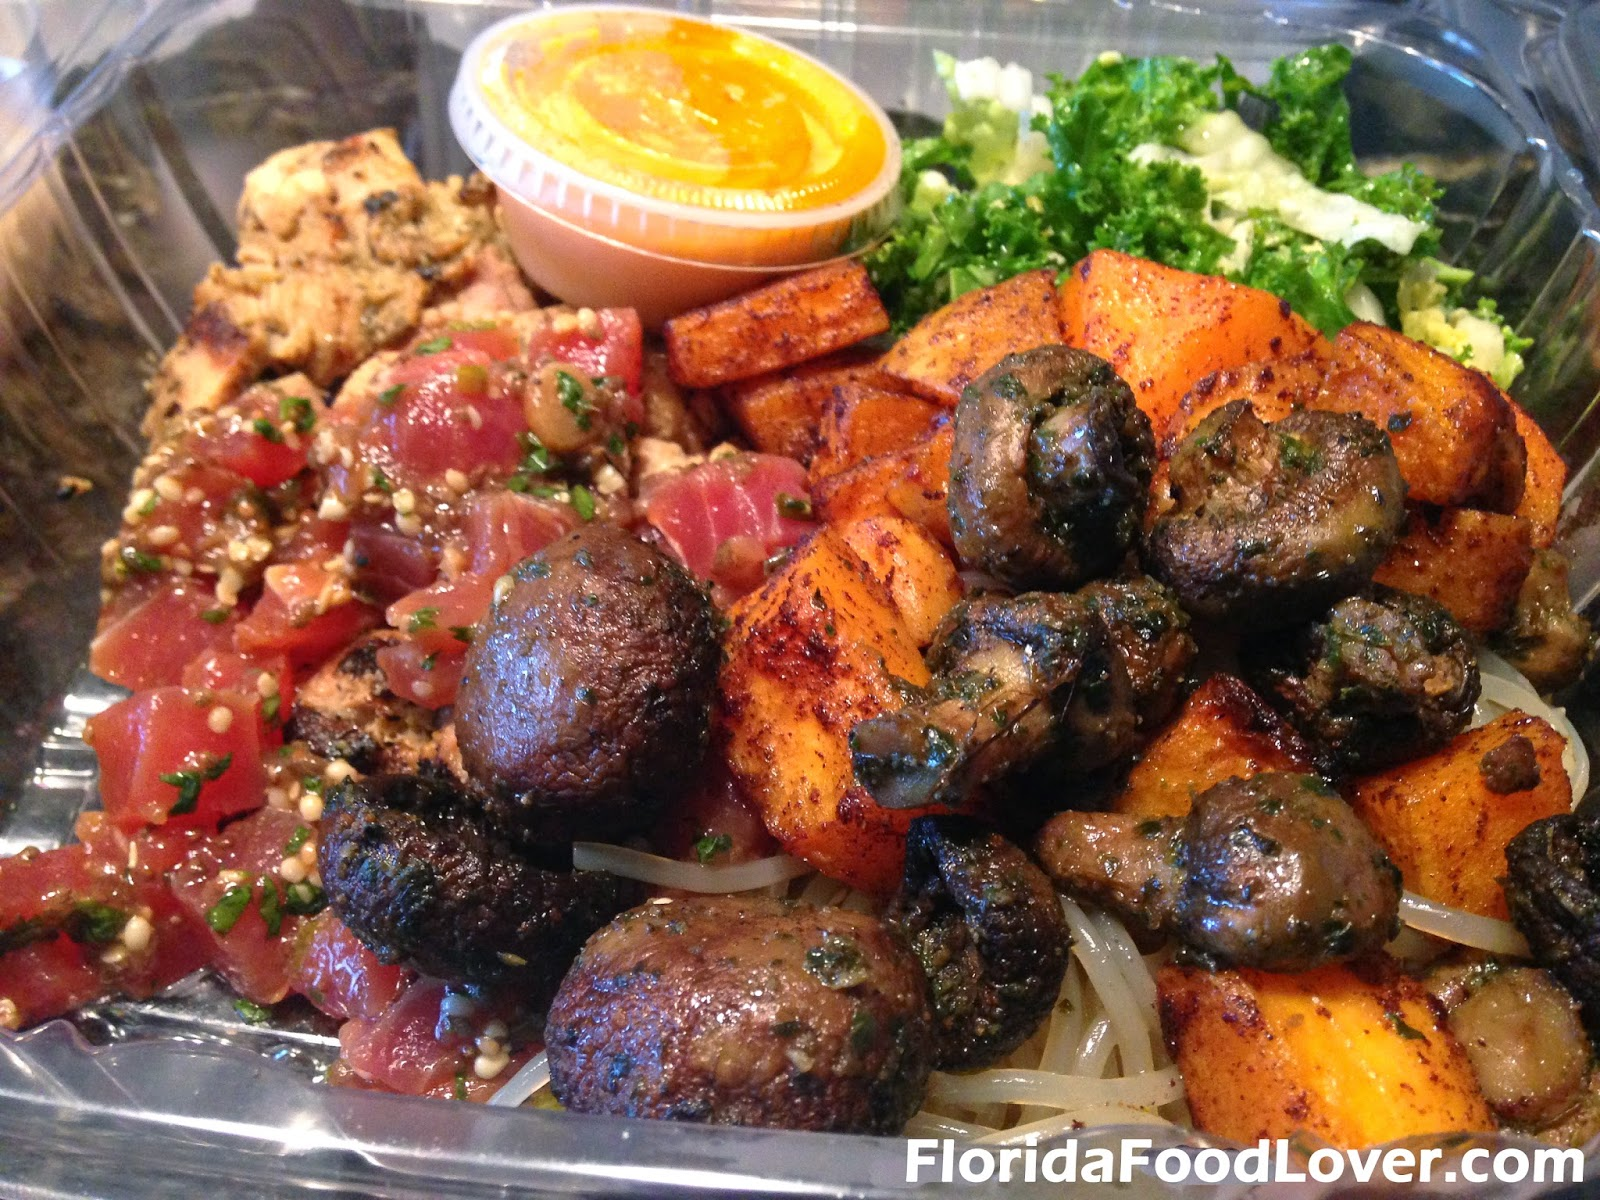 Florida Food Lover: Fresh Kitchen – Tampa, FL